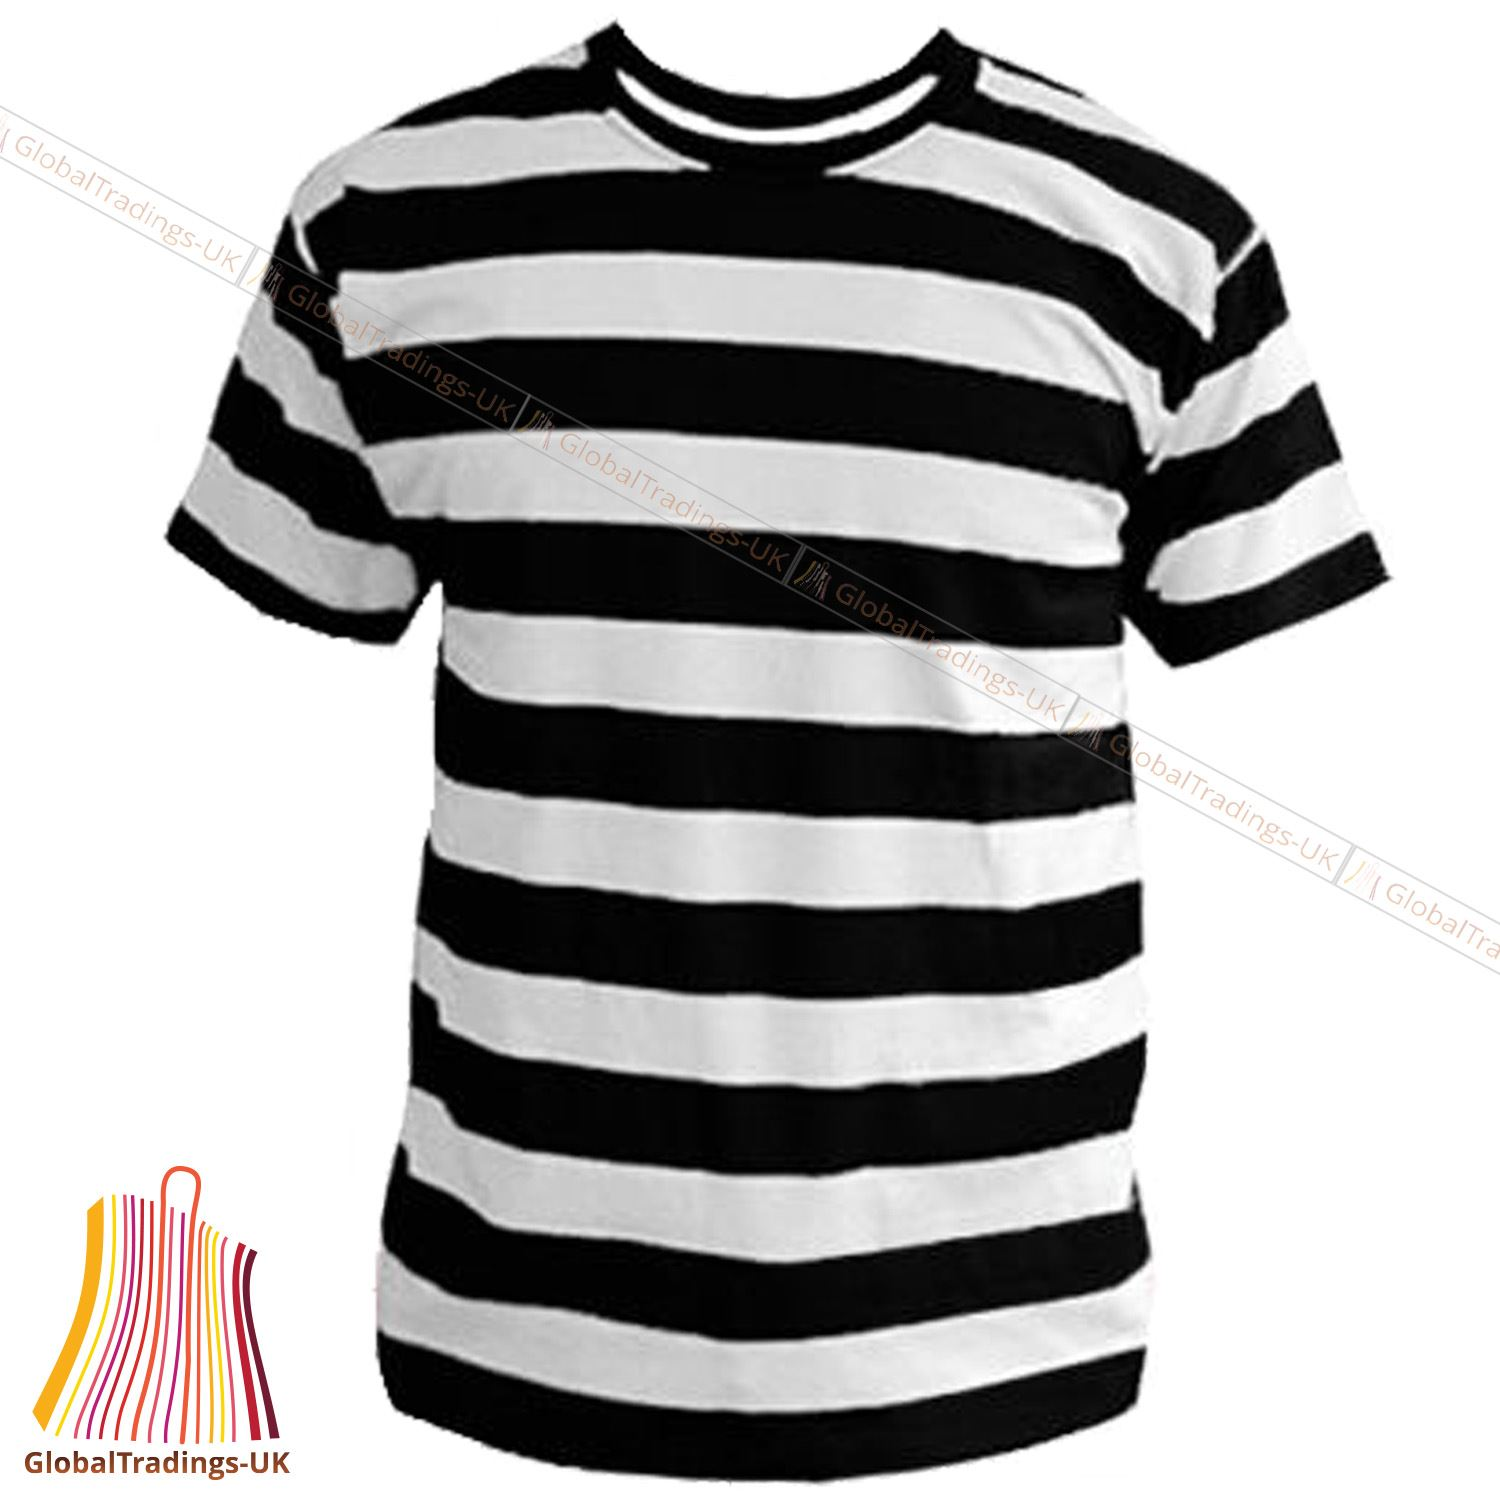 Black and white prisoner police like striped t shirt for Best mens dress shirts under 50